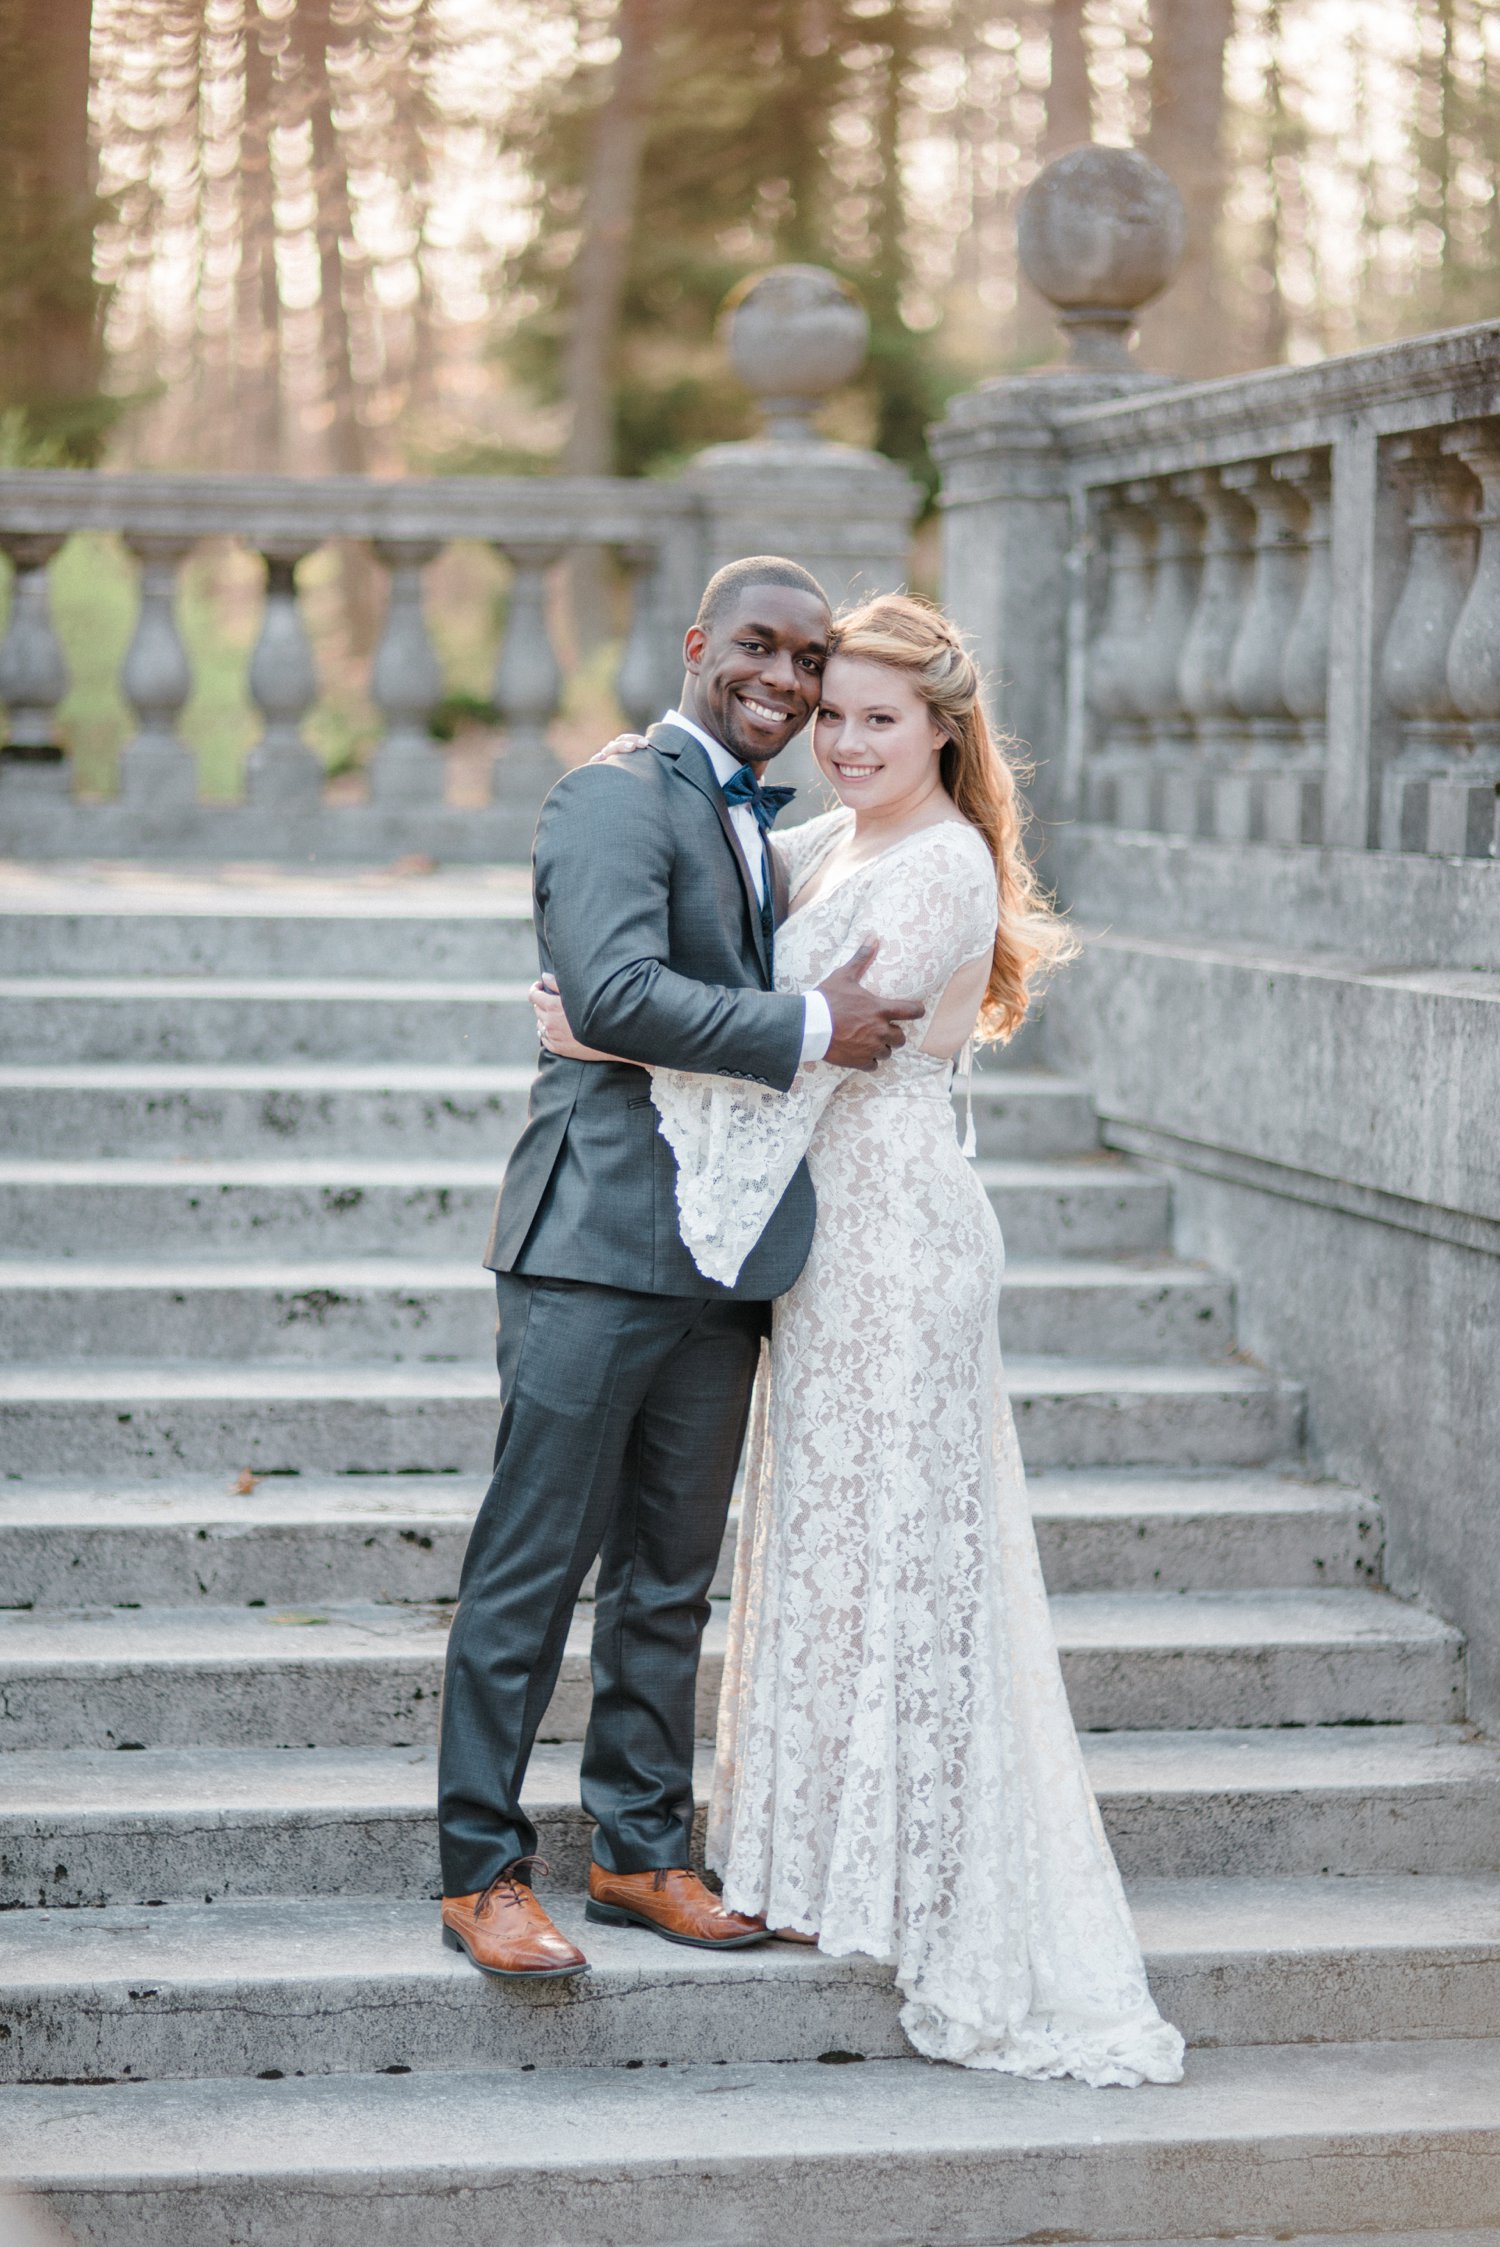 classic-romantic-wedding-maryland-photographer-strong-mansion-sentimental-ceremony-editorial-portraits